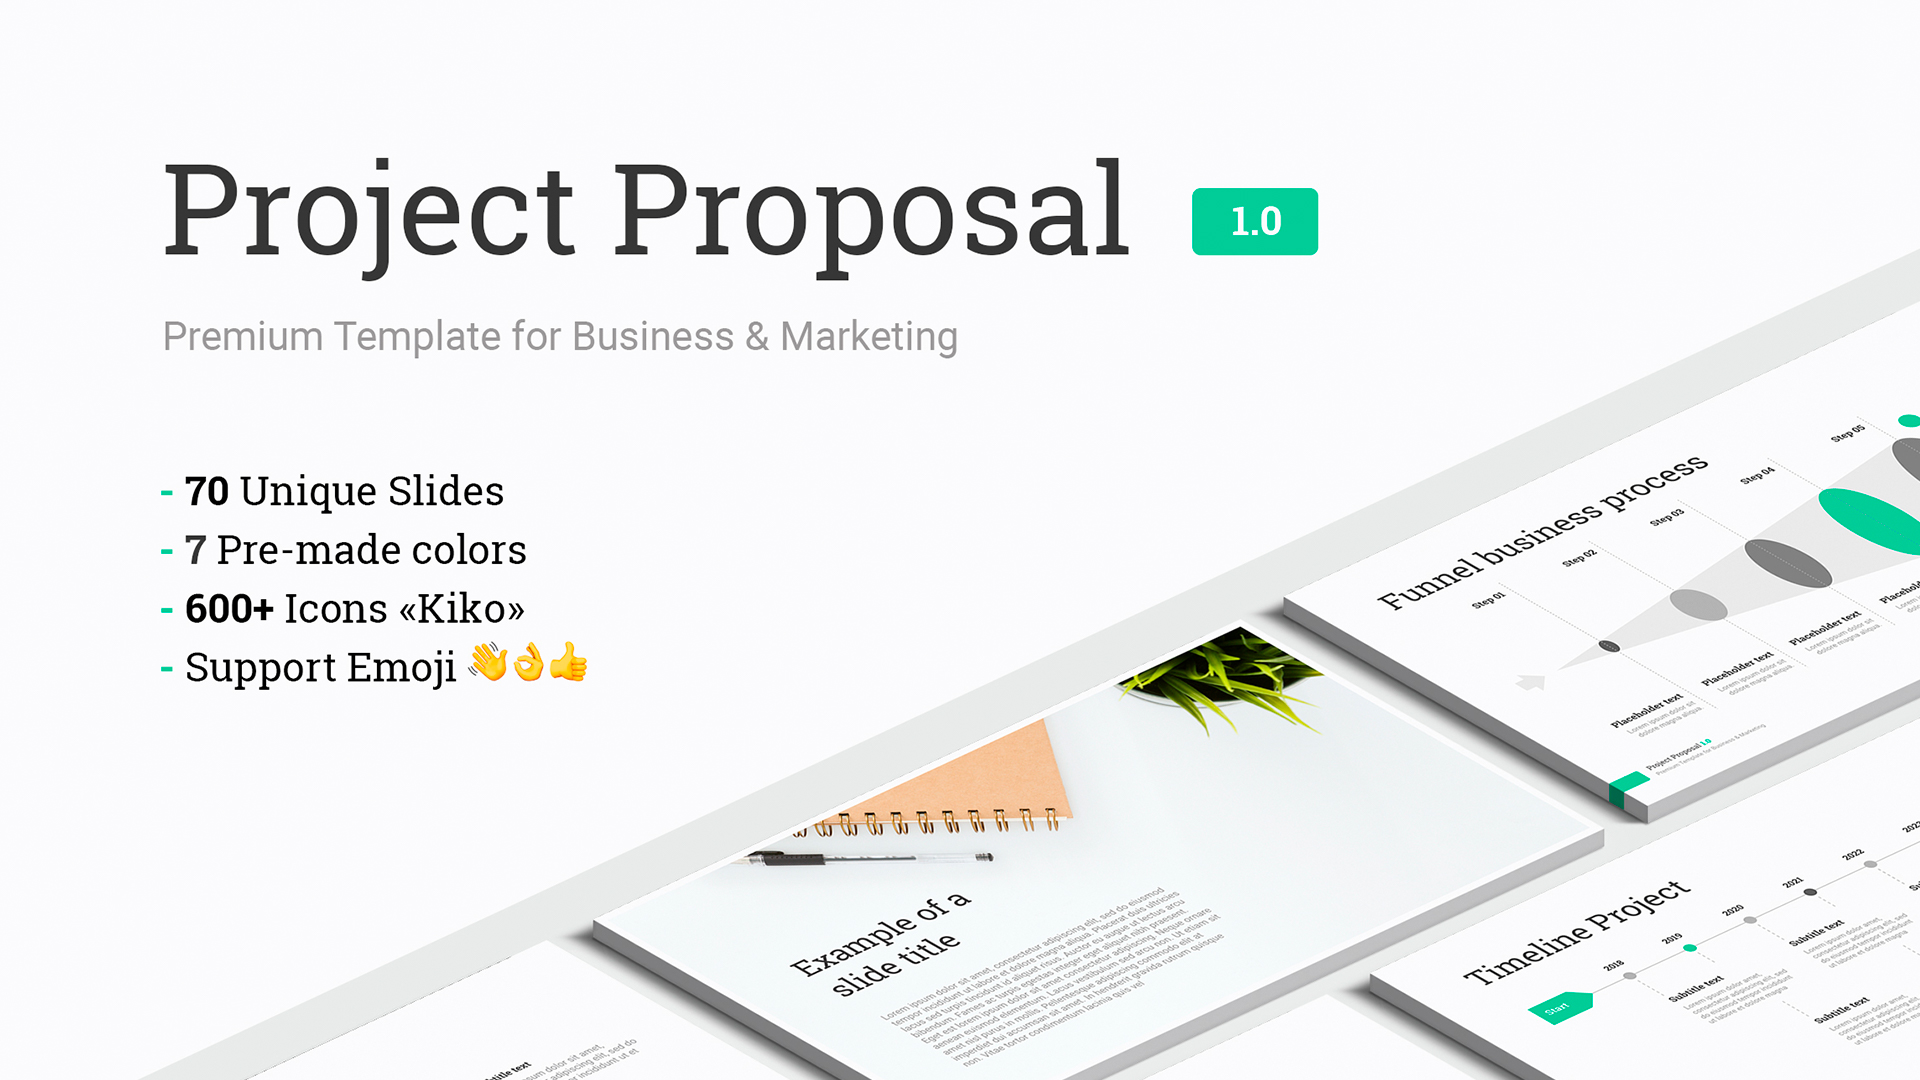 Google slides presentation for Project Proposal